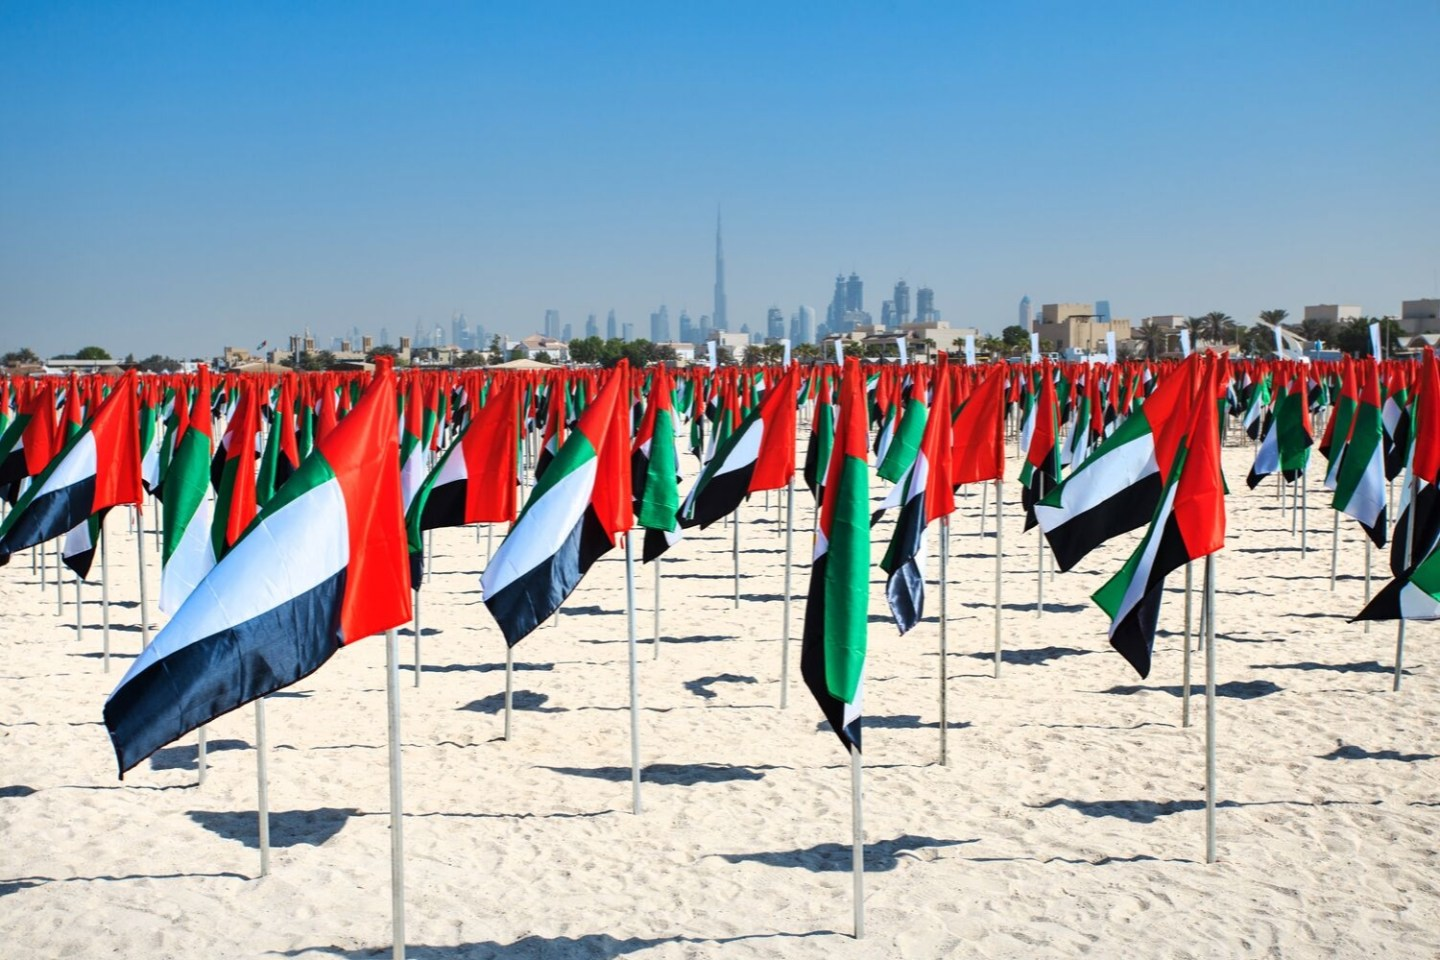 Flags on Kite Beach Celebrating National Day UAE